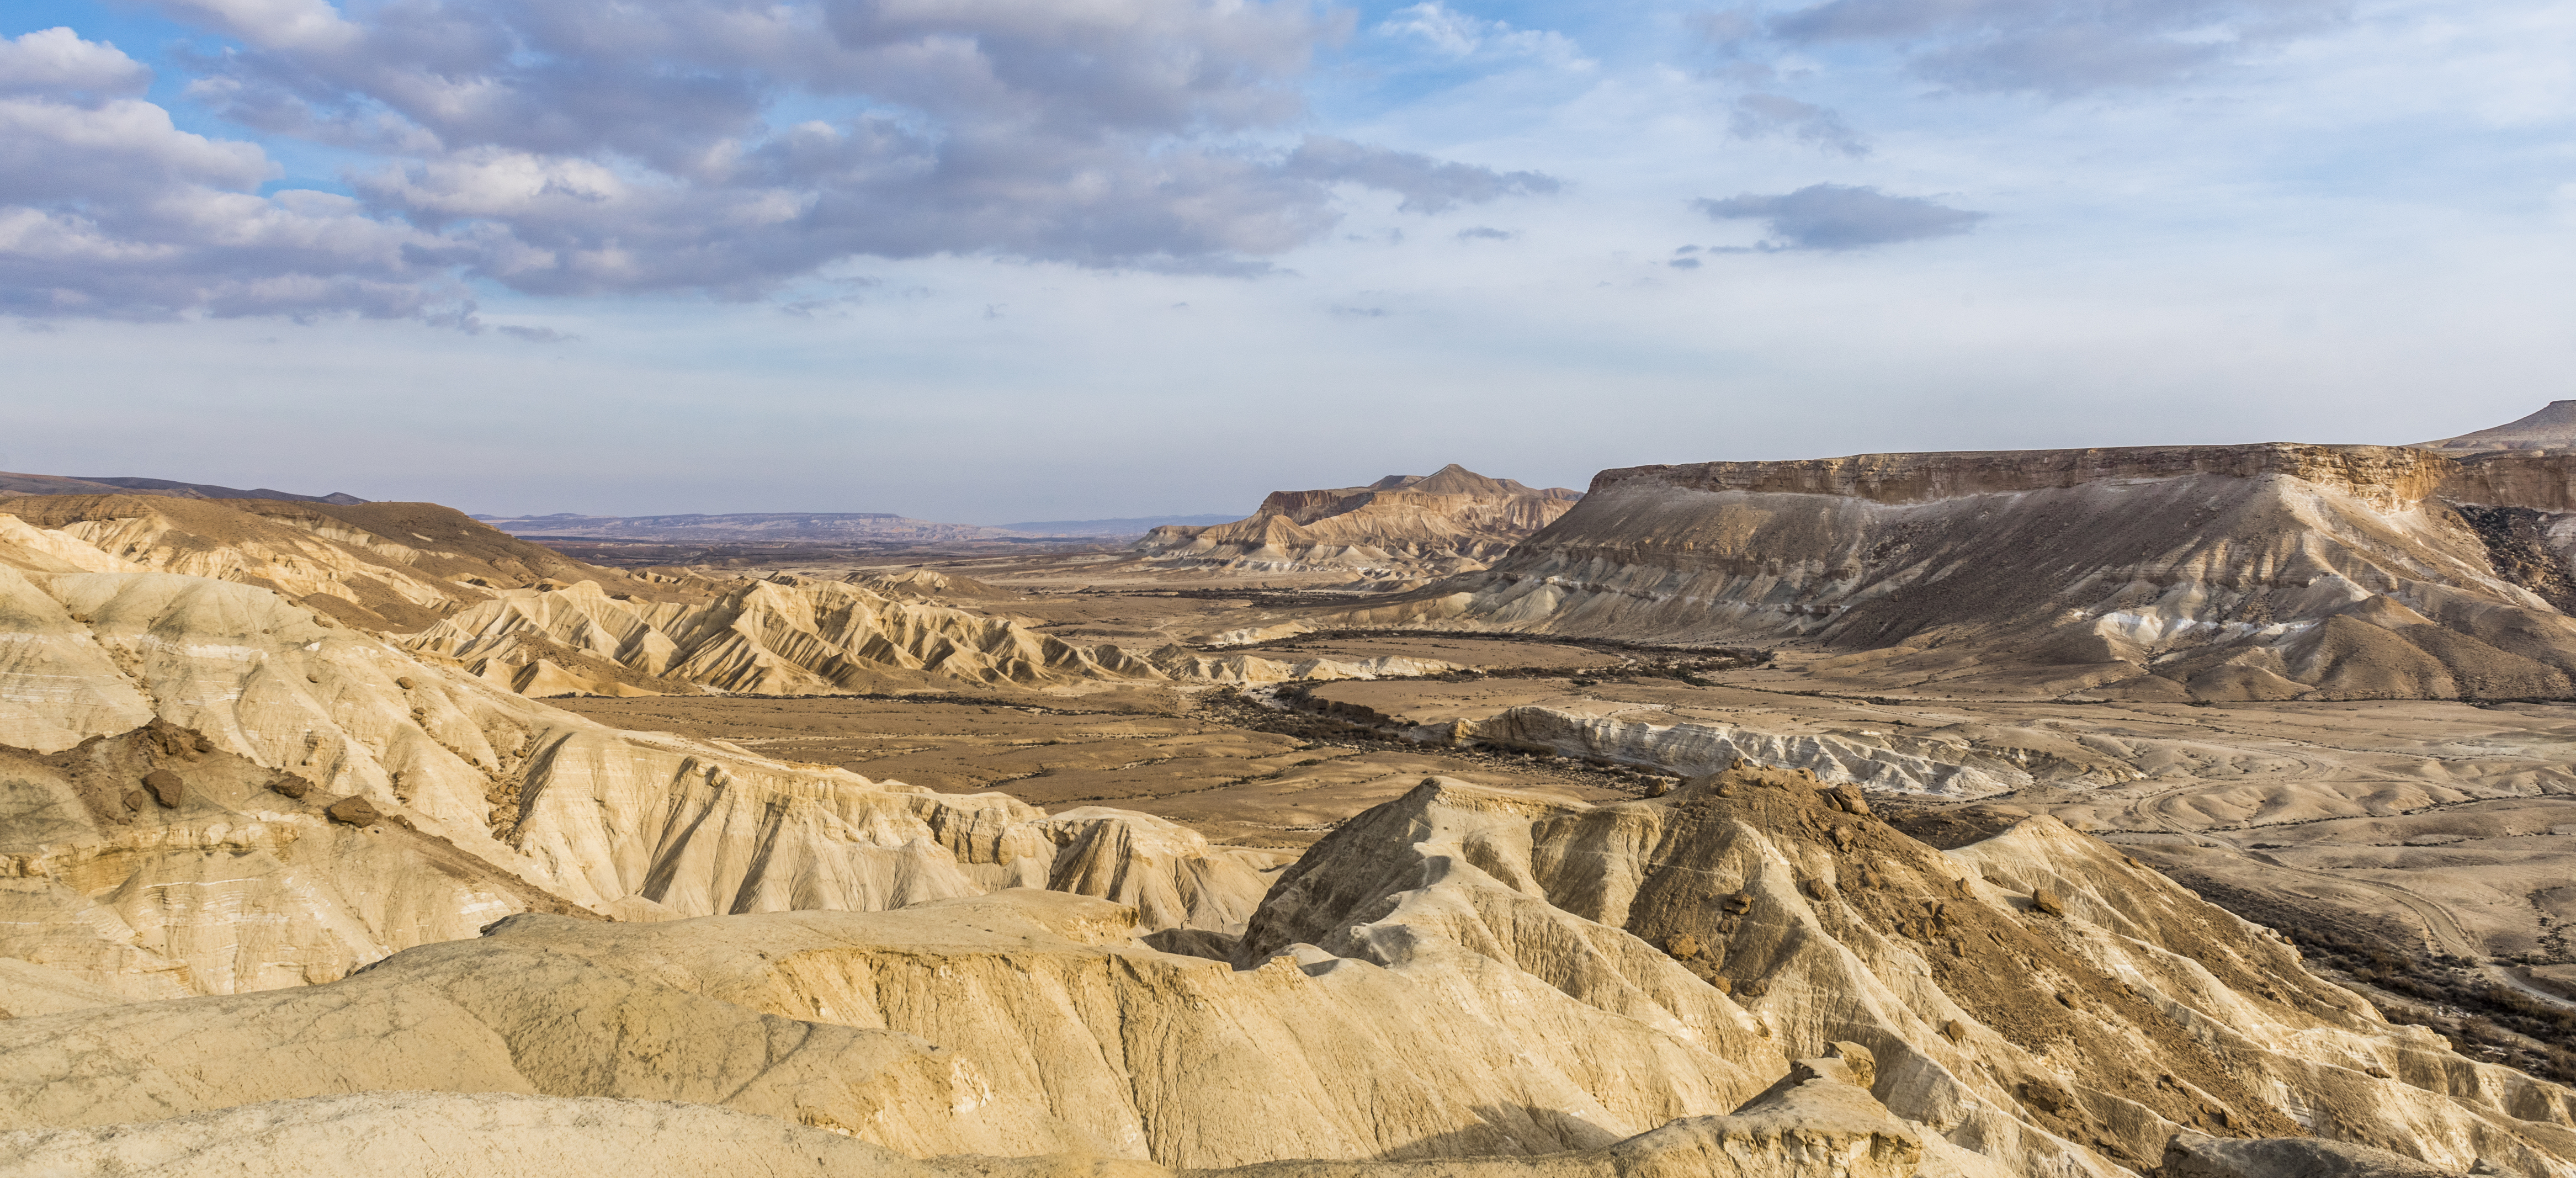 mountain terrain of the Negev Desert